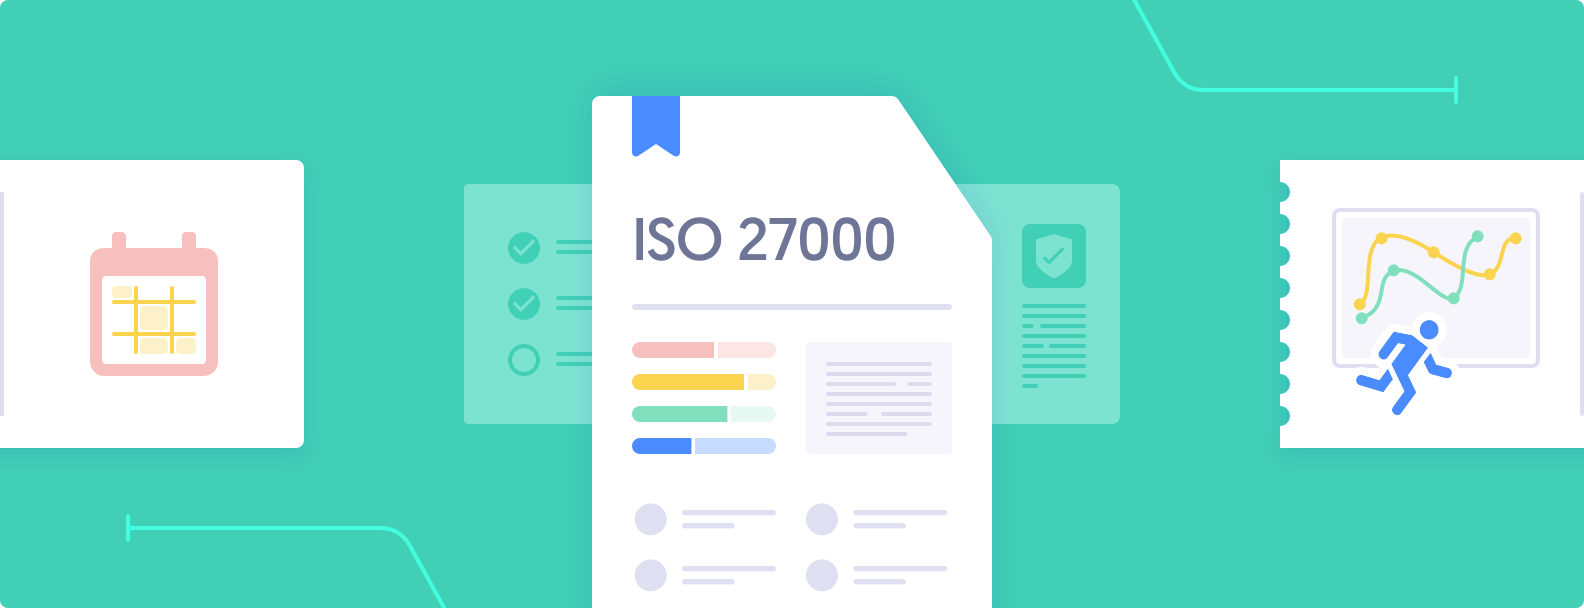 Ultimate Guide to ISO 27000